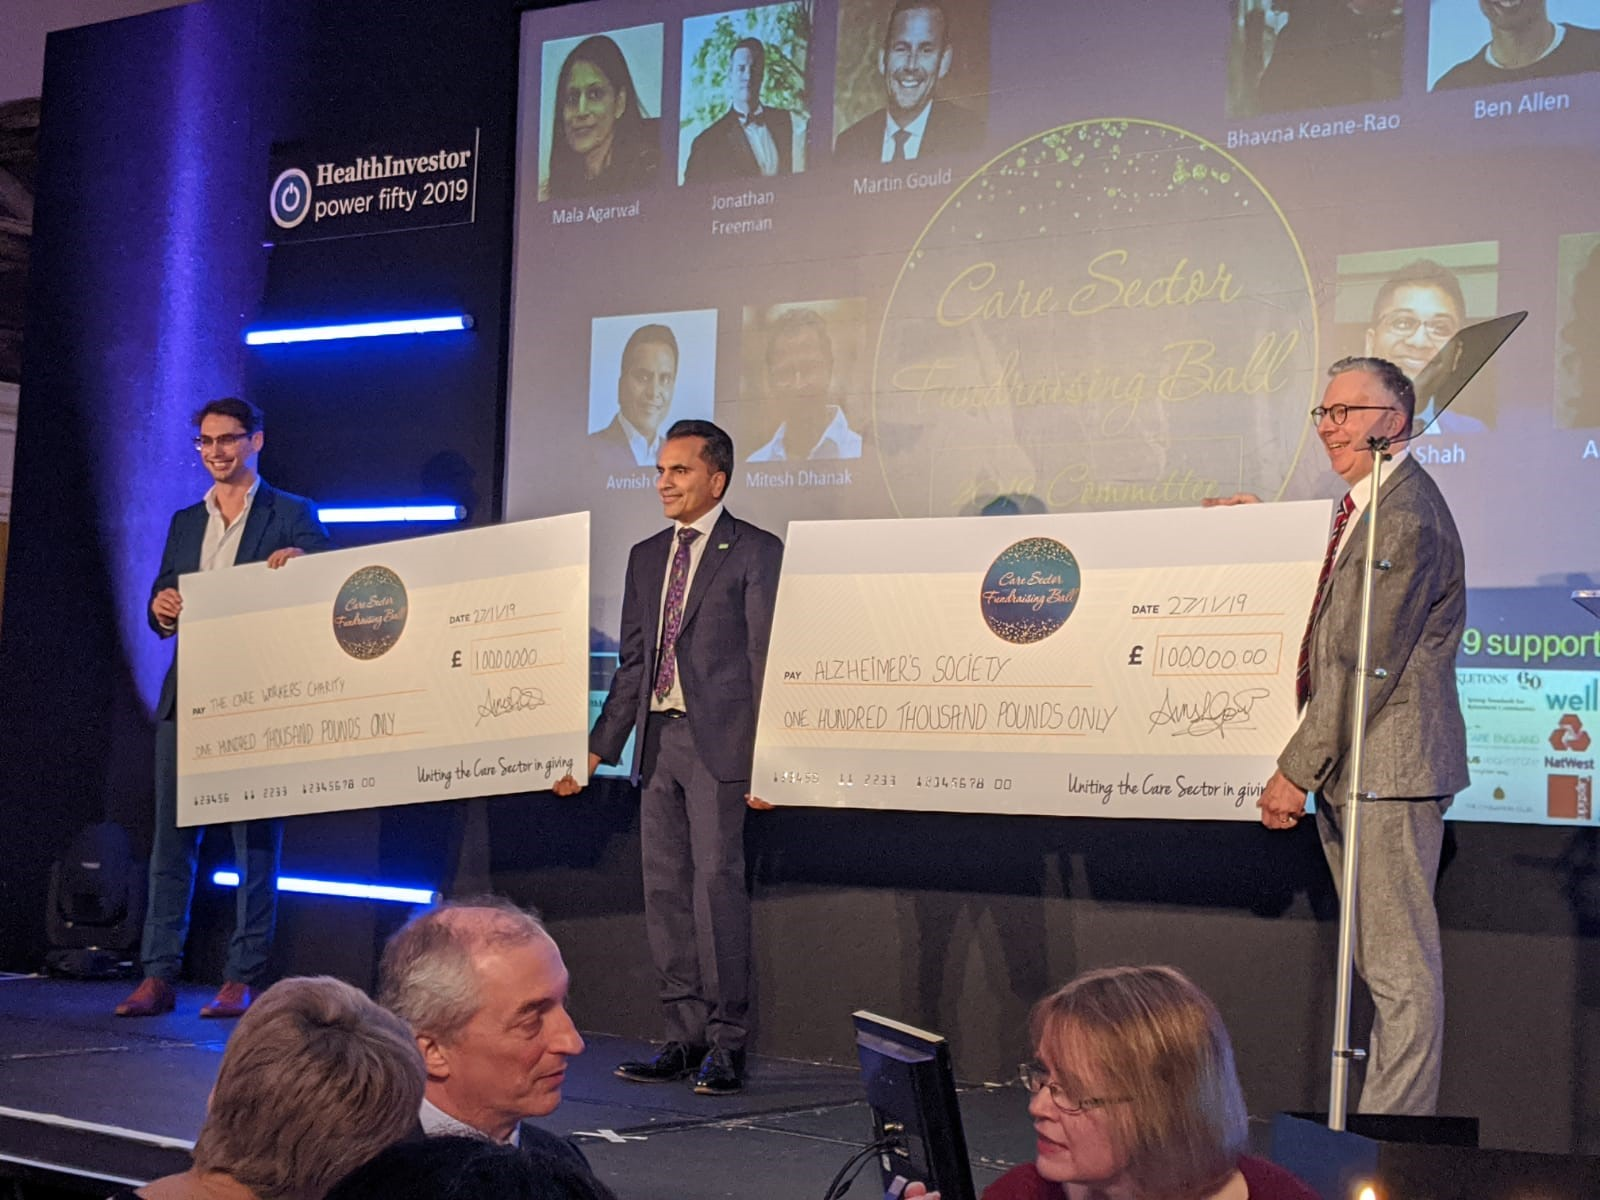 Avnish Goyal awards funds from 2019 ball to CWC and Alzheimers Soc